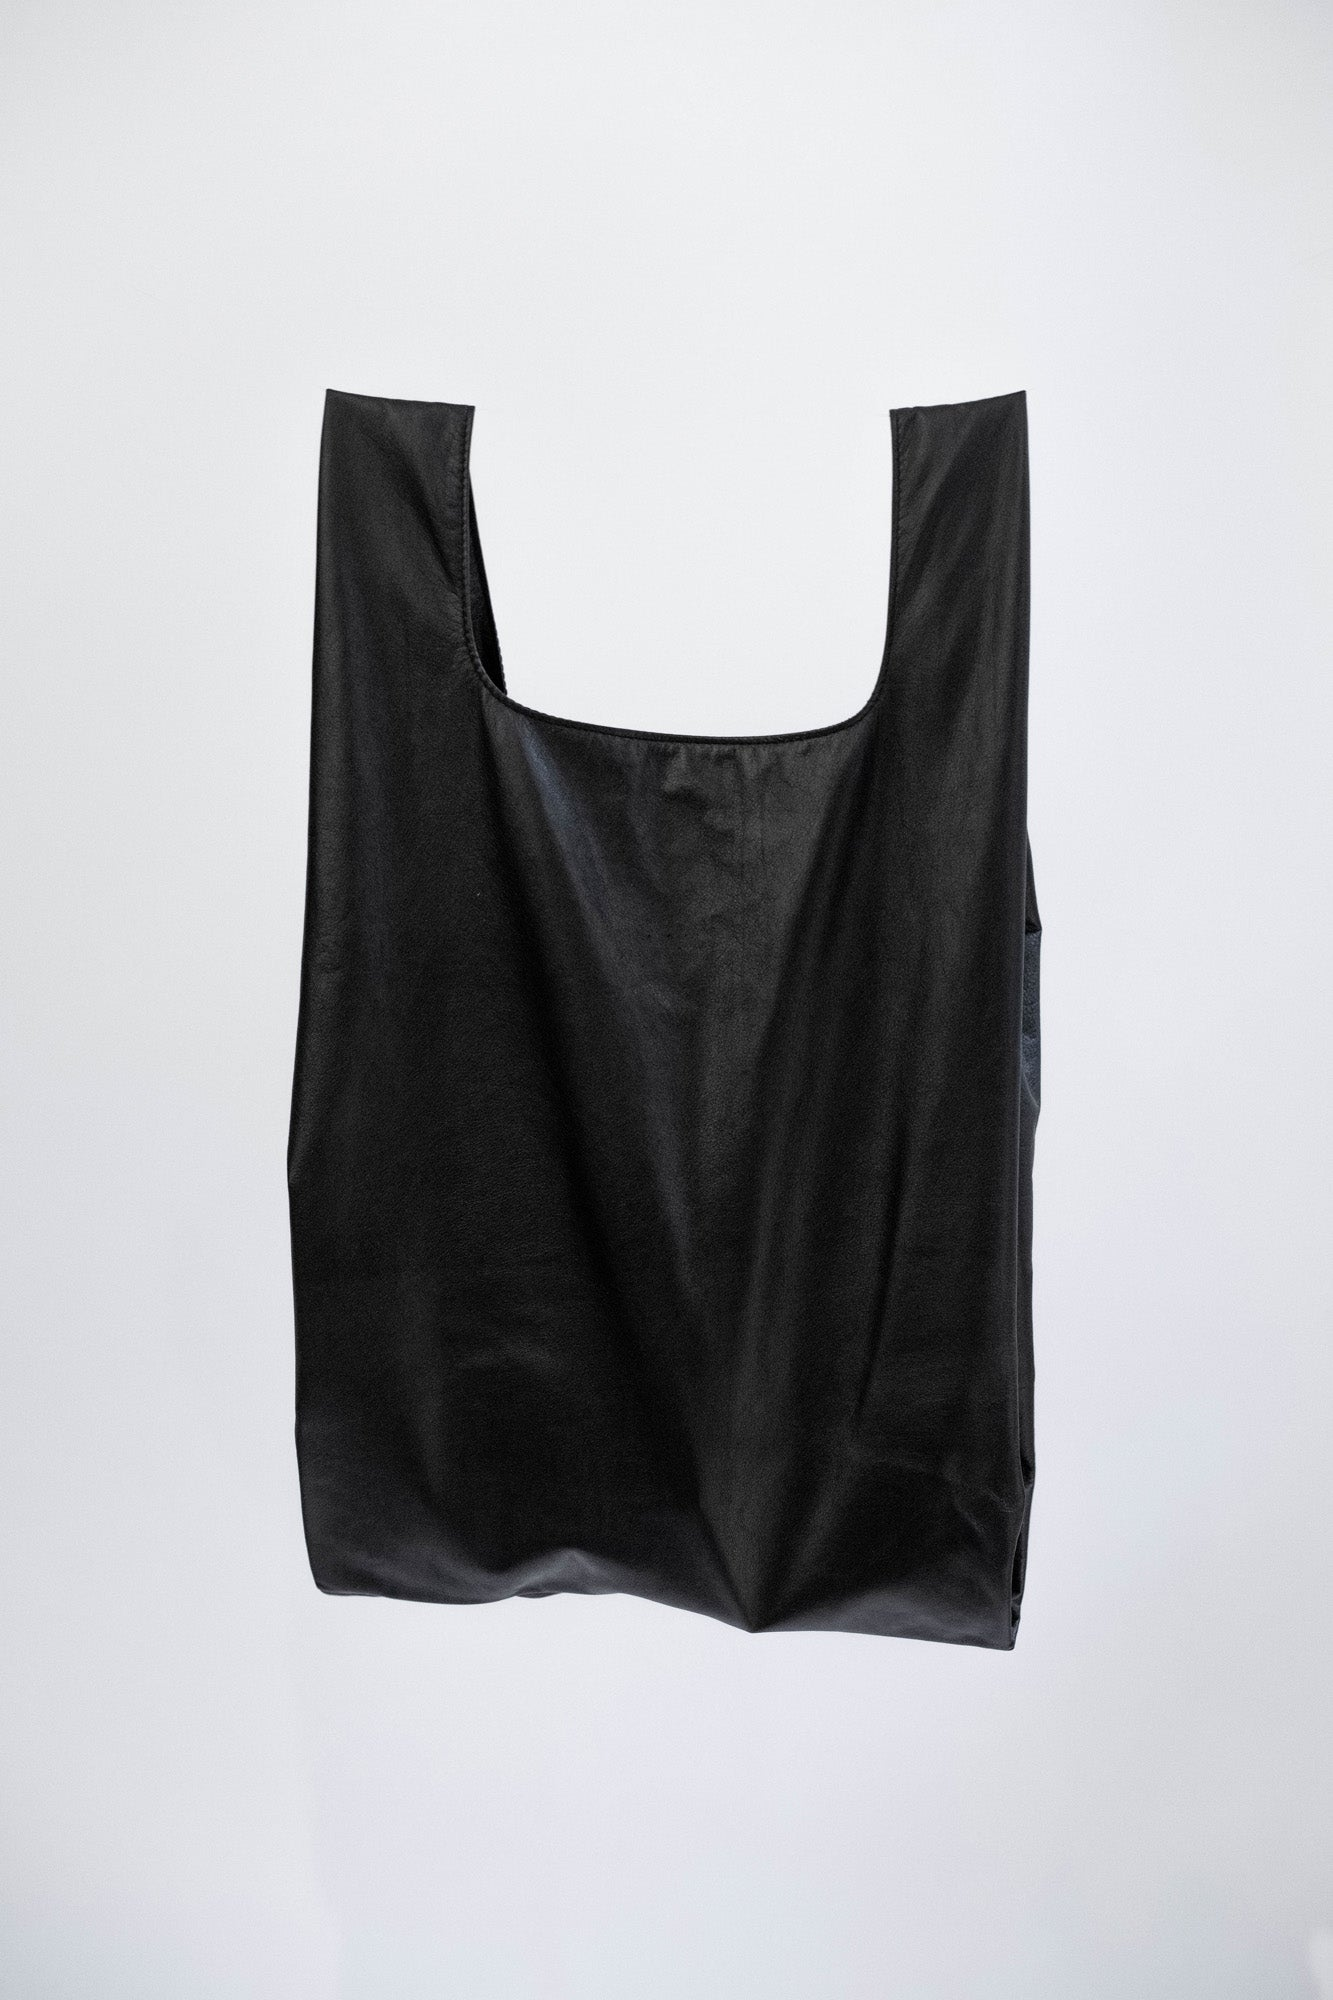 NOT SO PLASTIC BAG - Medium Black Plonge Leather Tote